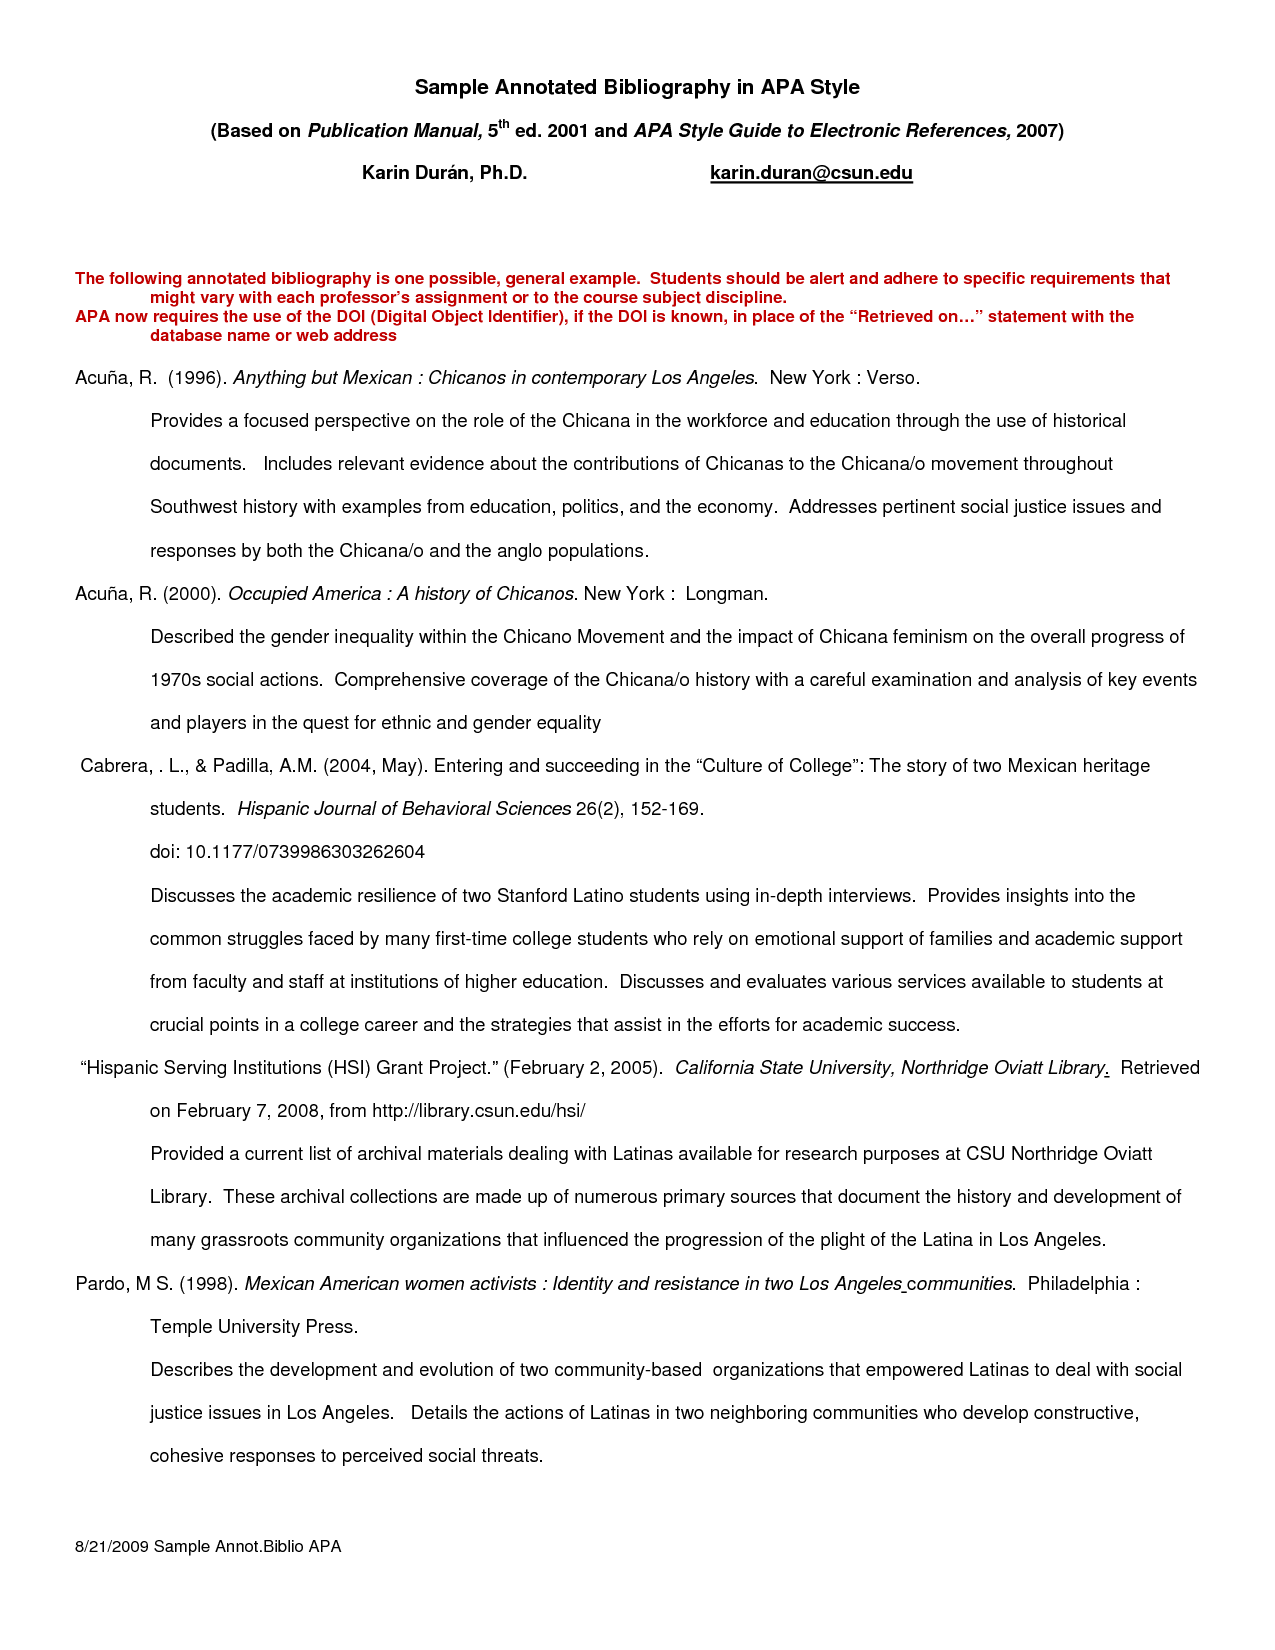 Annotated for website essay. Bibliography apa